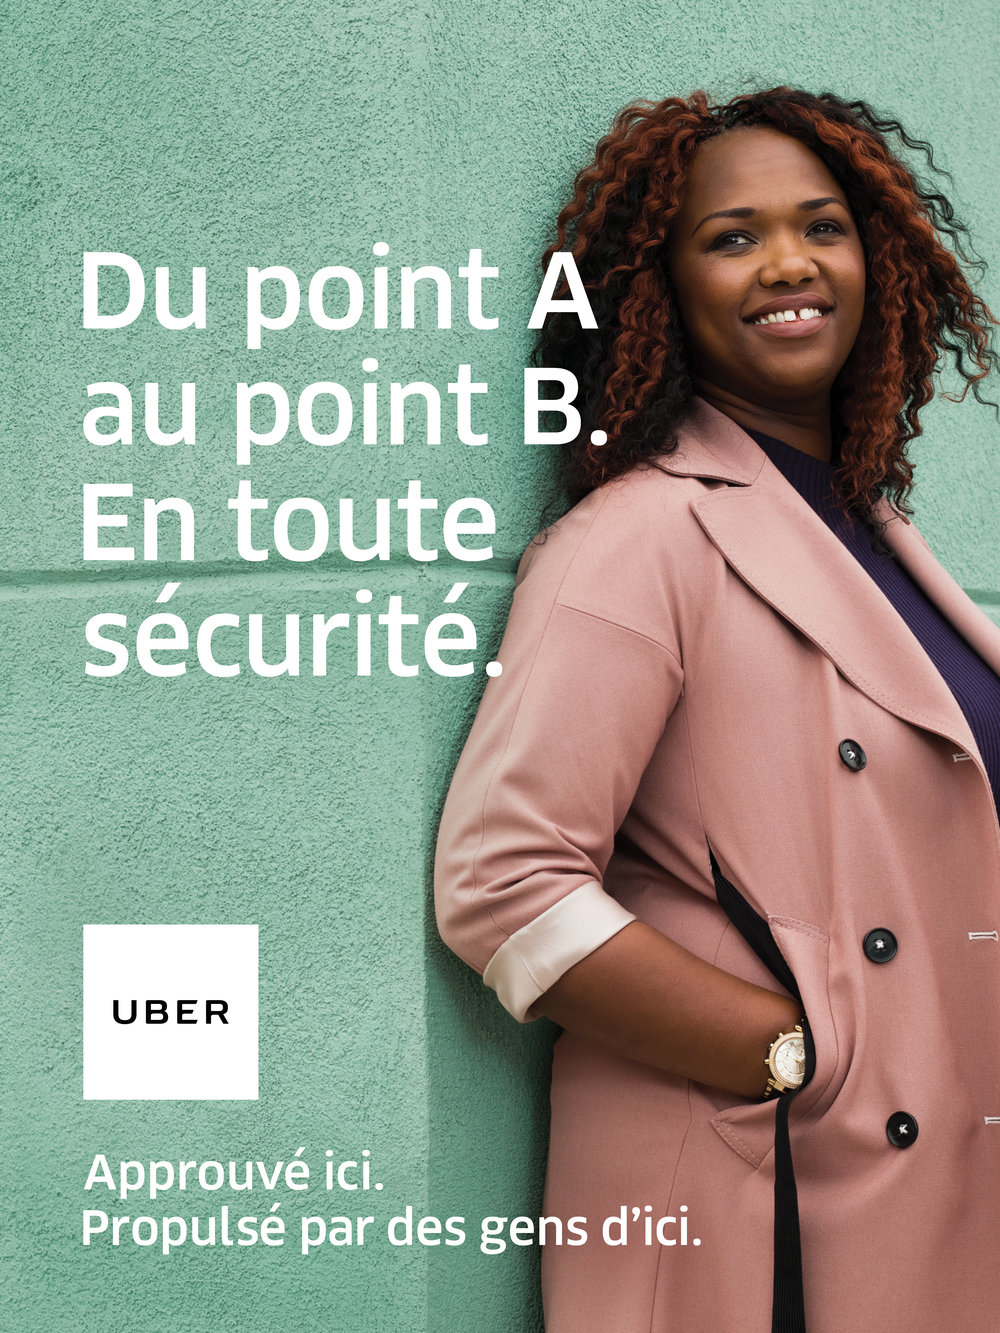 MTL_montreal-brand-campaign_OOH-vertical_12x16_r2 (1).jpg